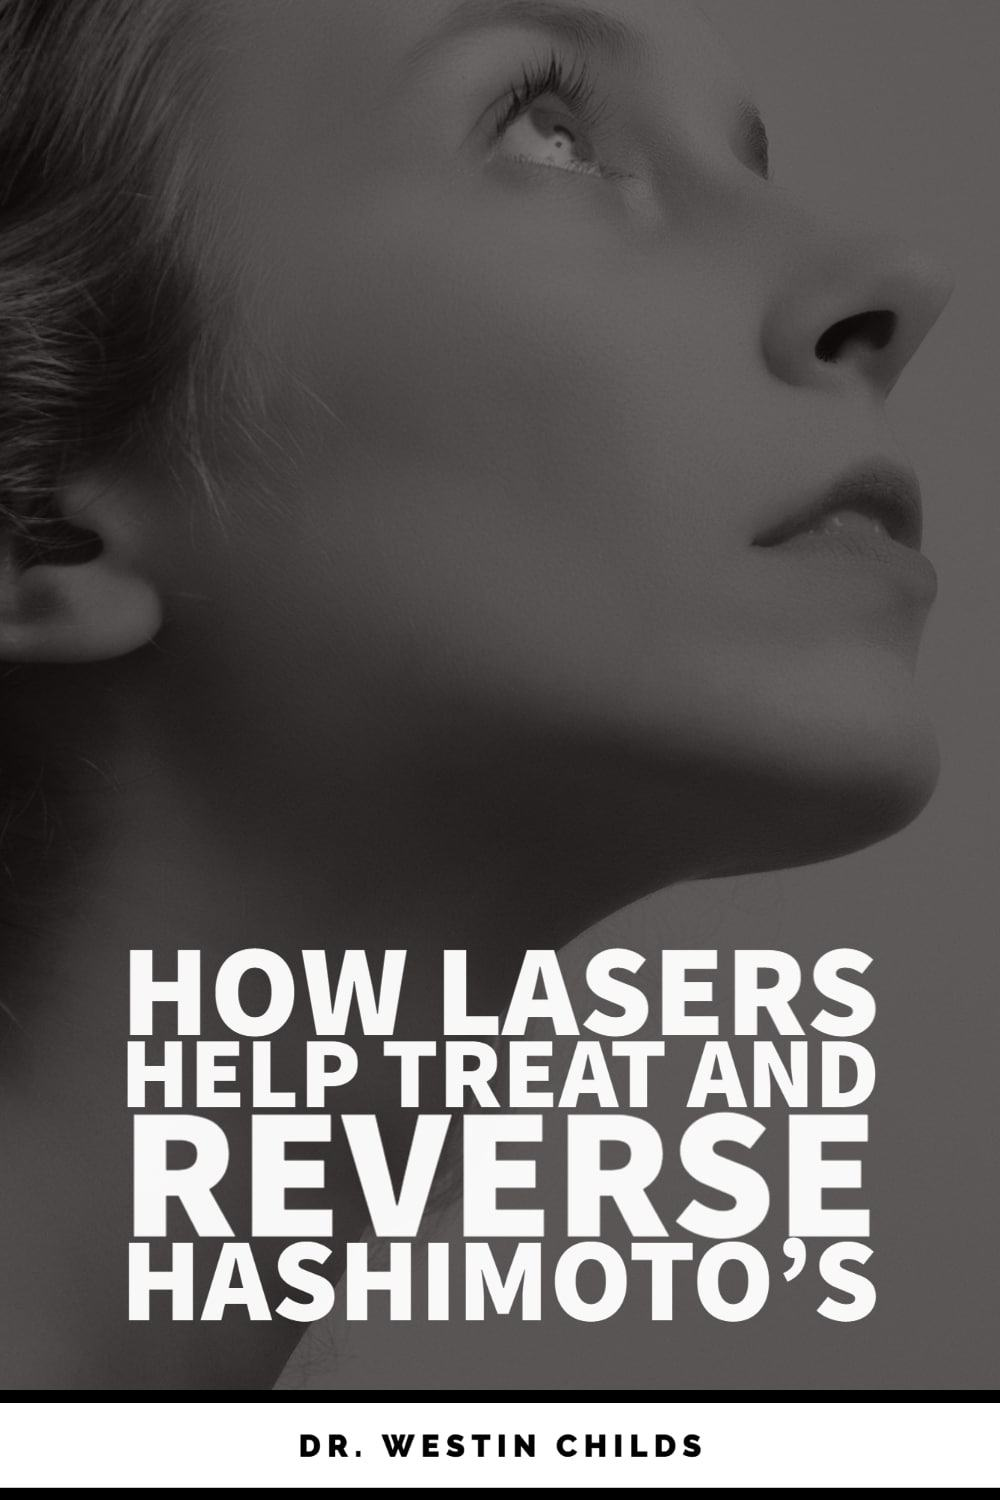 Can lasers treat and reverse hashimoto's thyroiditis?